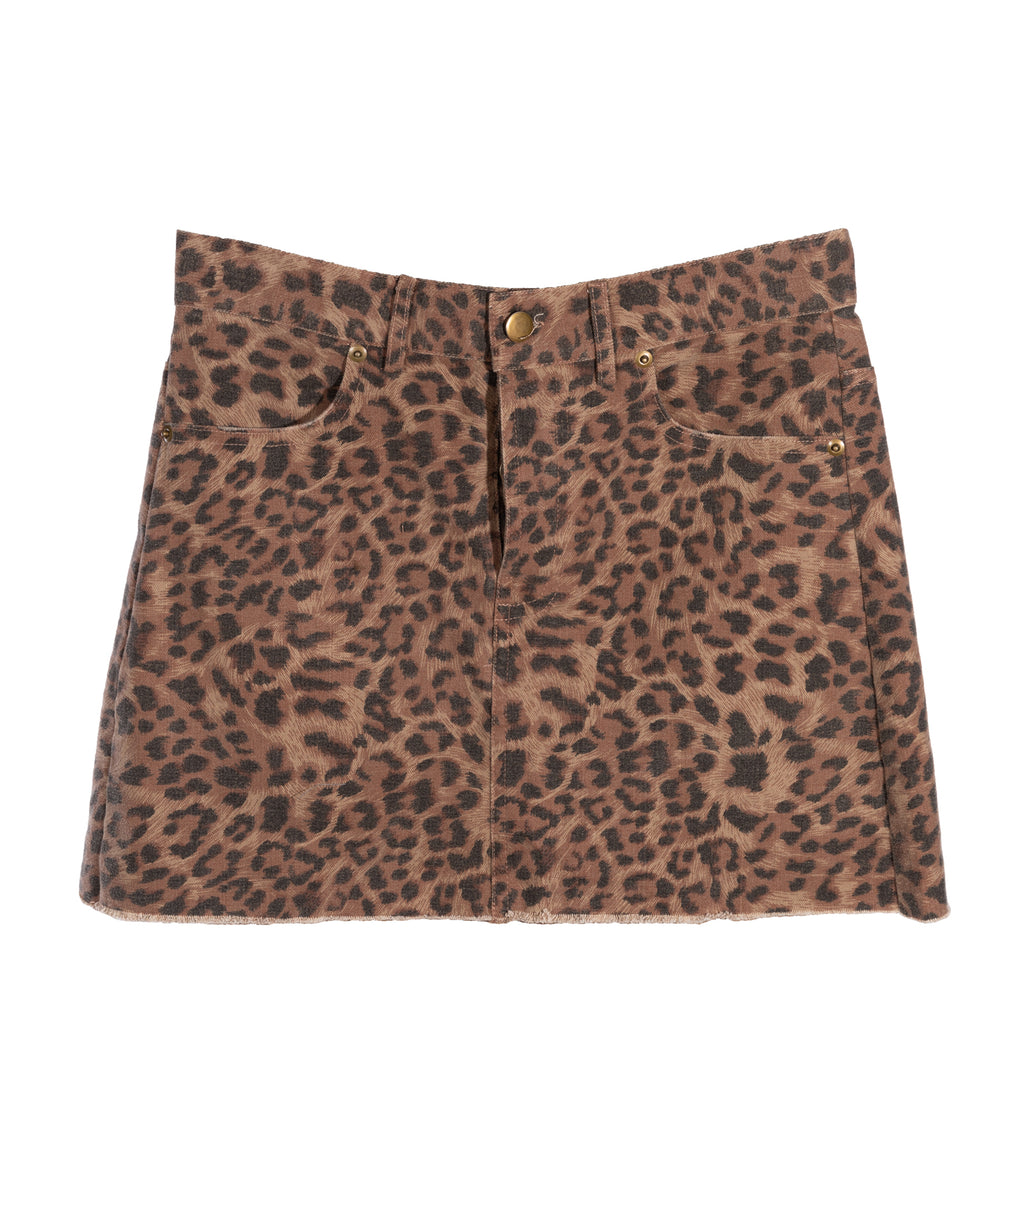 Jungle Love Leopard Denim Skirt Women